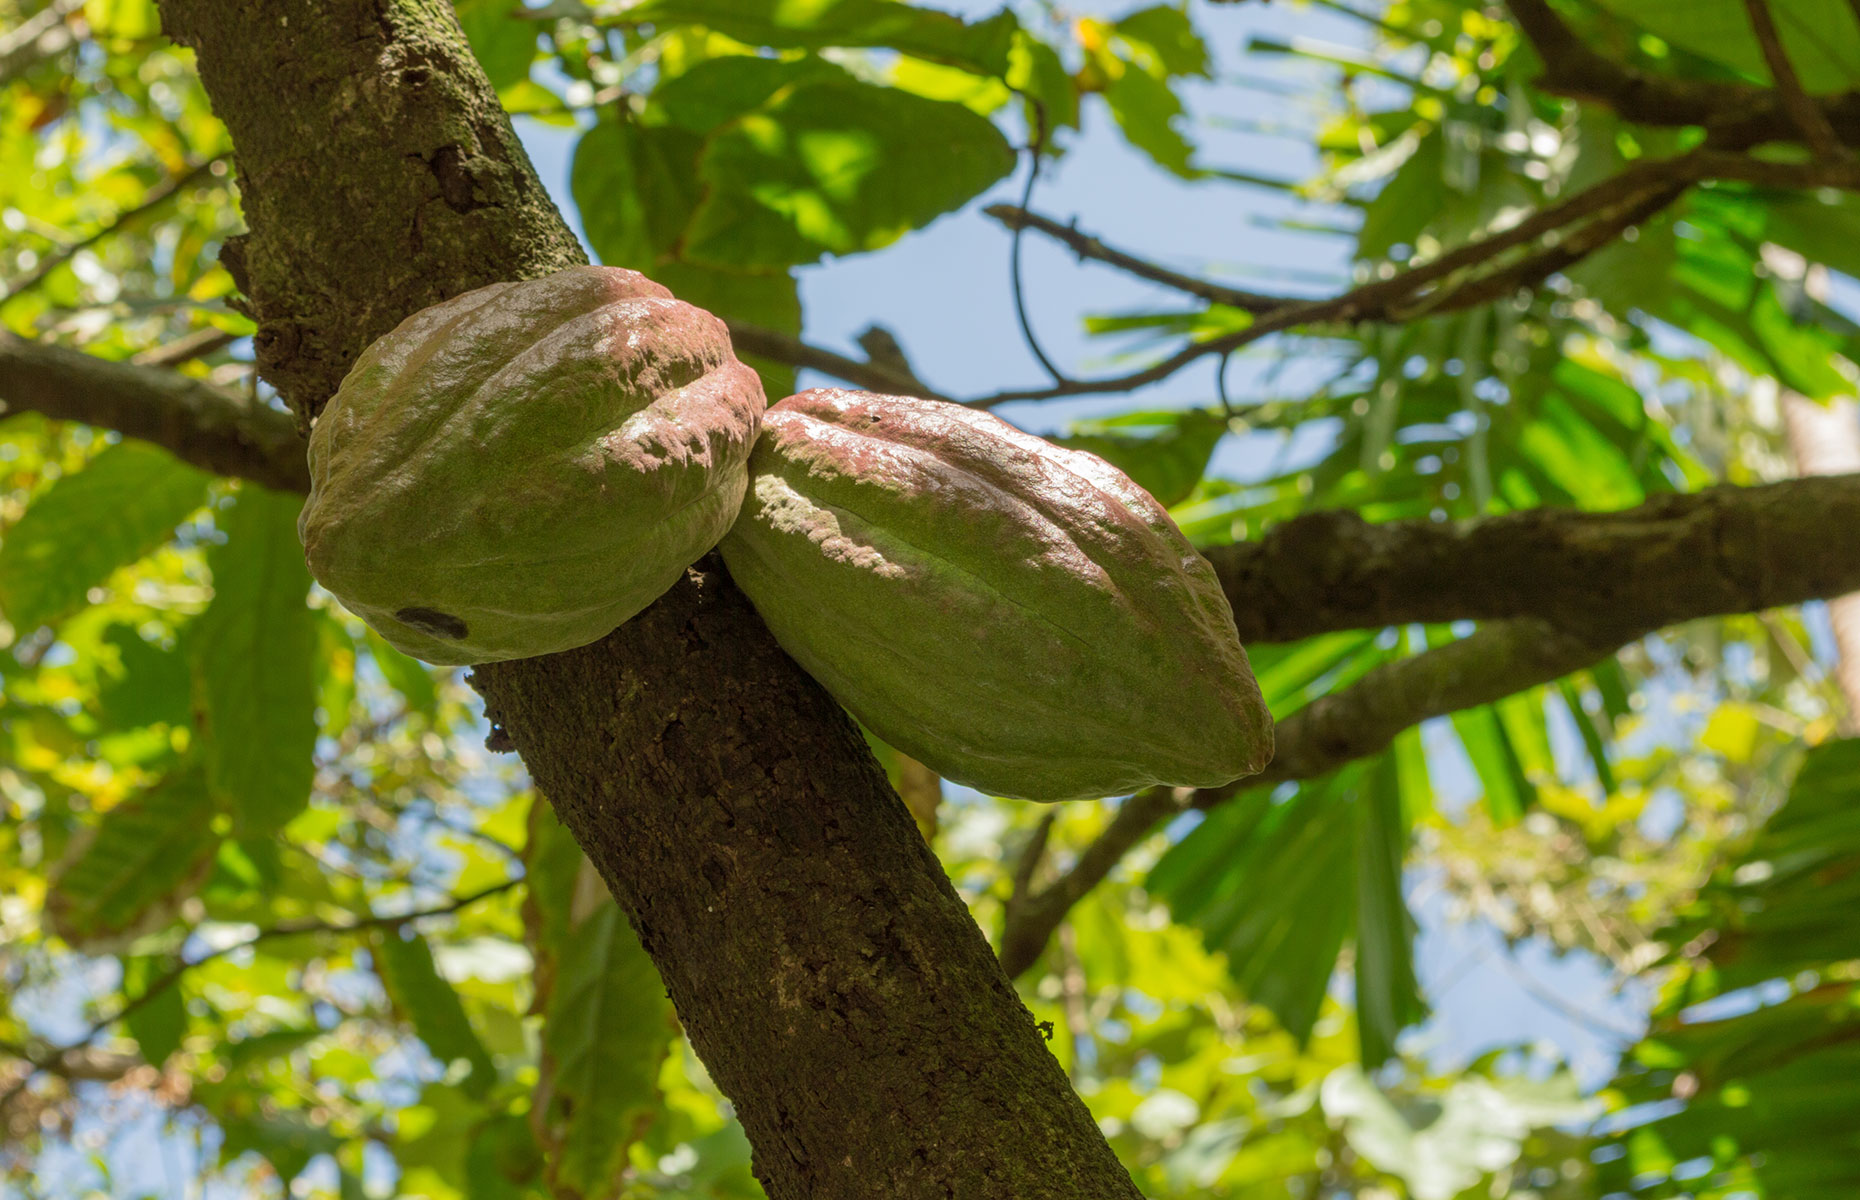 Cocoa trees on Saint Lucia (Image: Sublimage/Shutterstock)